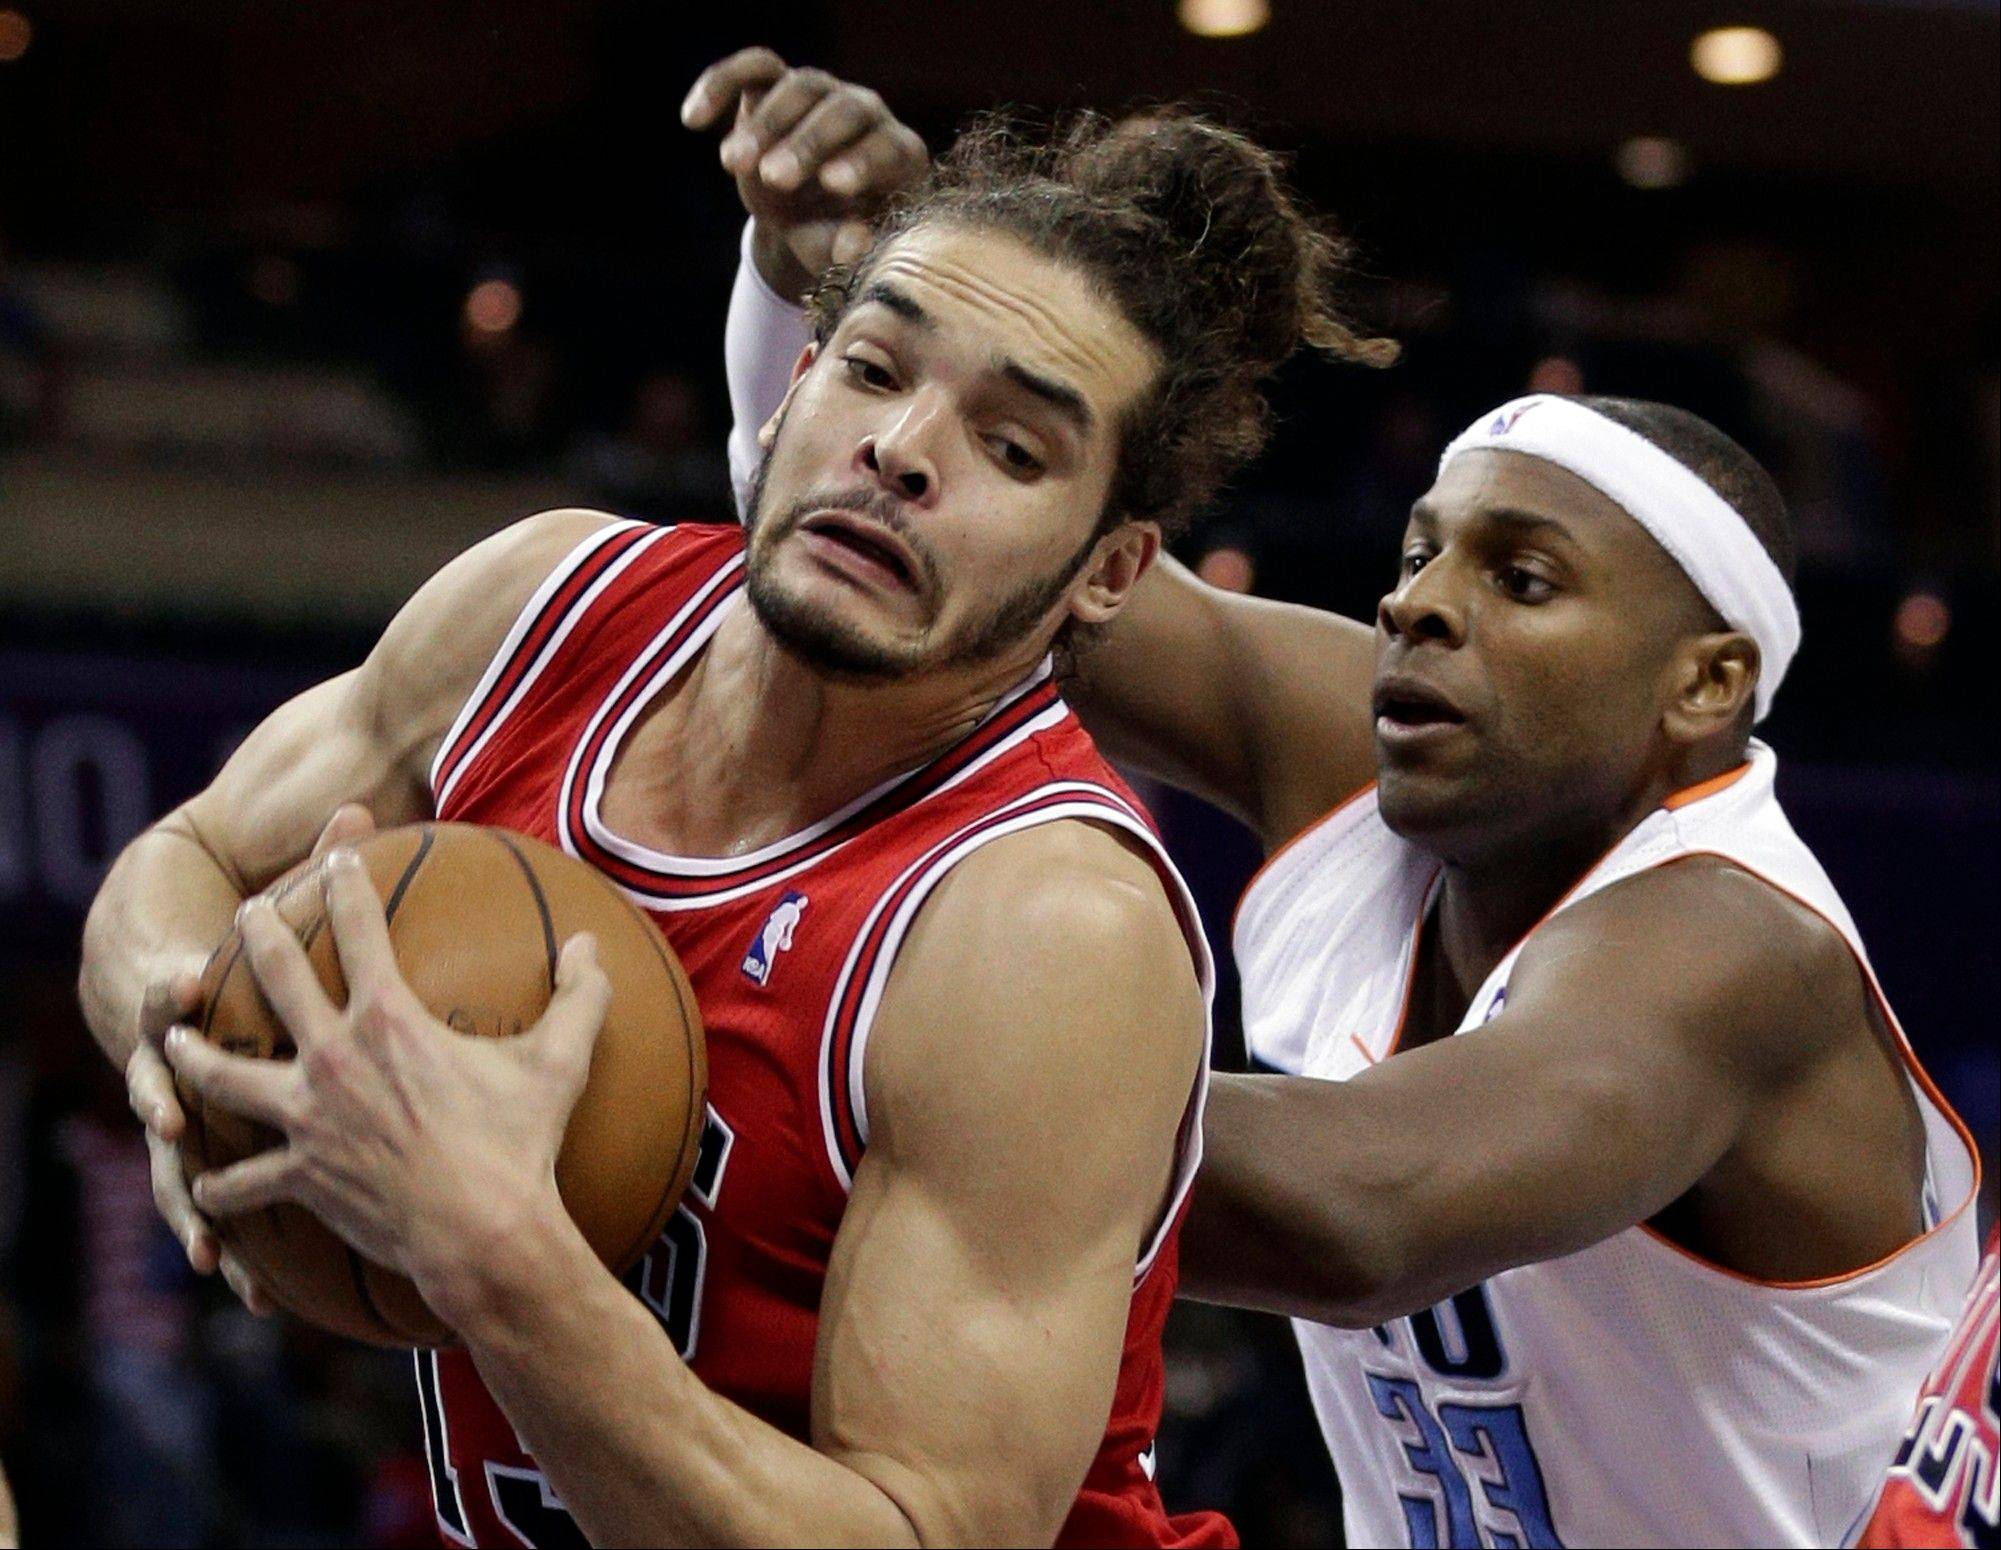 Chicago Bulls' Joakim Noah, left, grabs a rebound as Charlotte Bobcats' Brendan Haywood, right, defends during the first half of an NBA basketball game in Charlotte, N.C., Friday, Feb. 22, 2013.